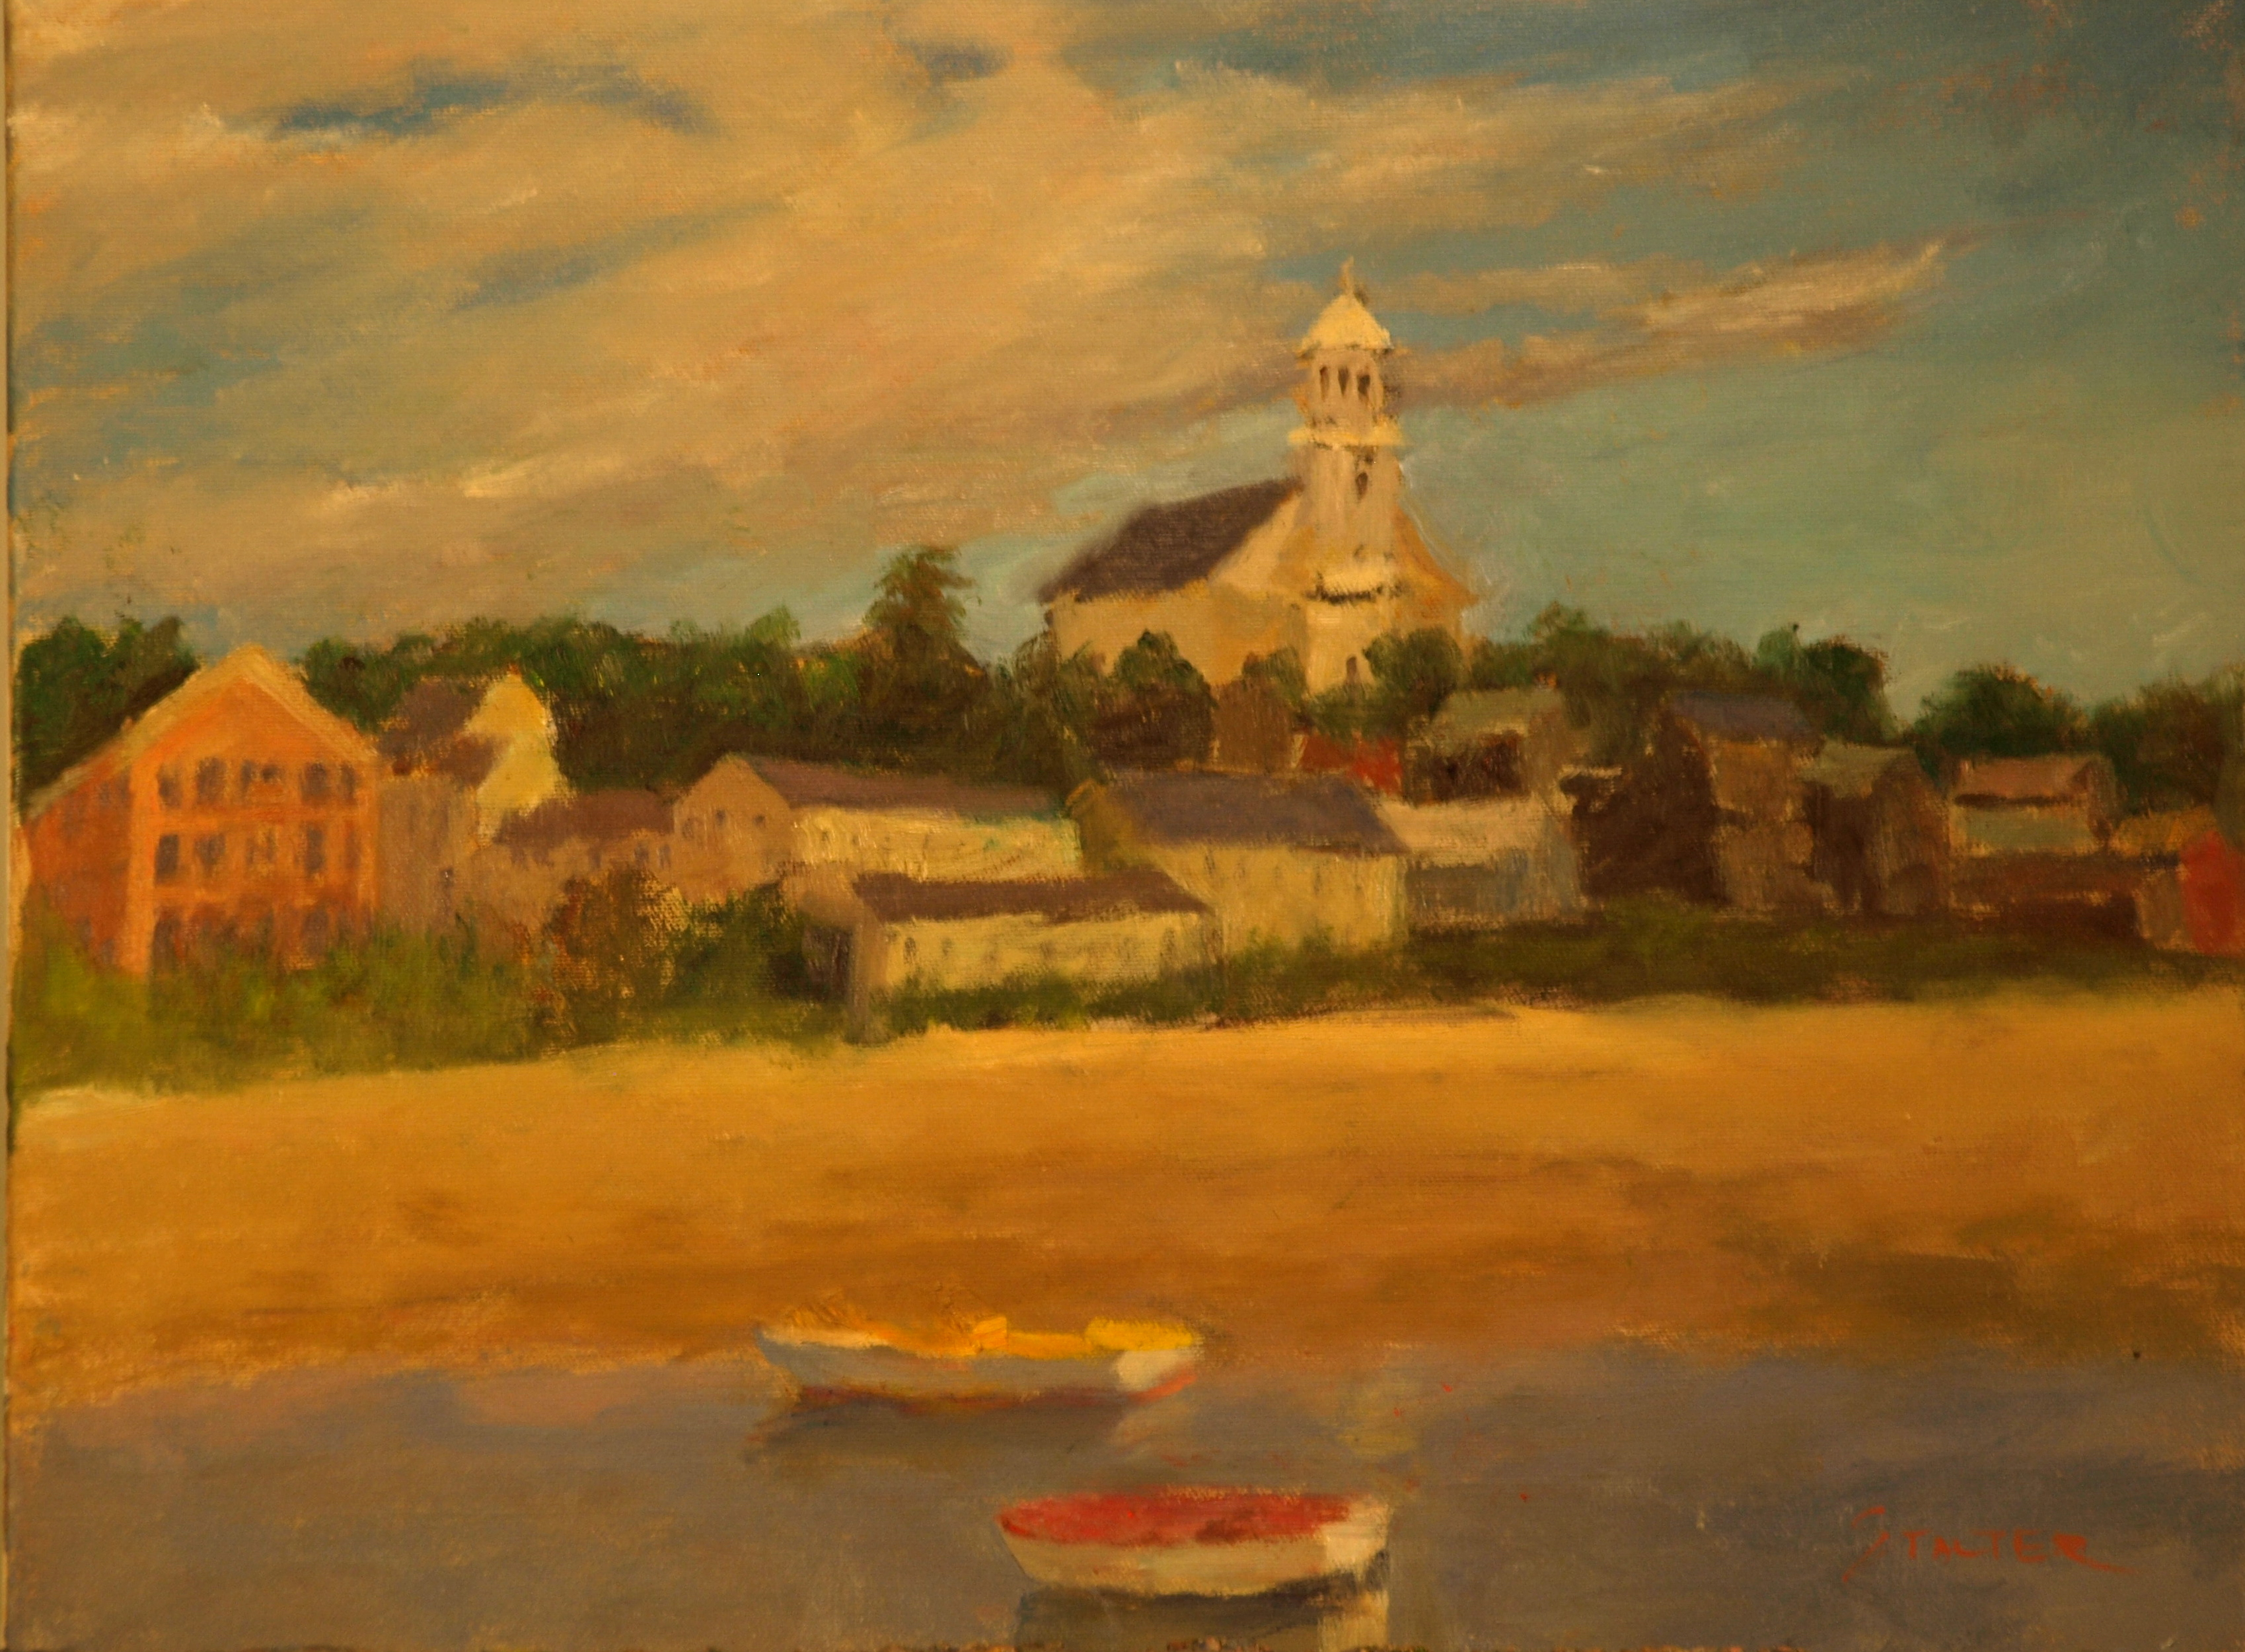 Anchored Rowboats, Oil on Canvas, 16 x 20 inches, by Richard Stalter, $225